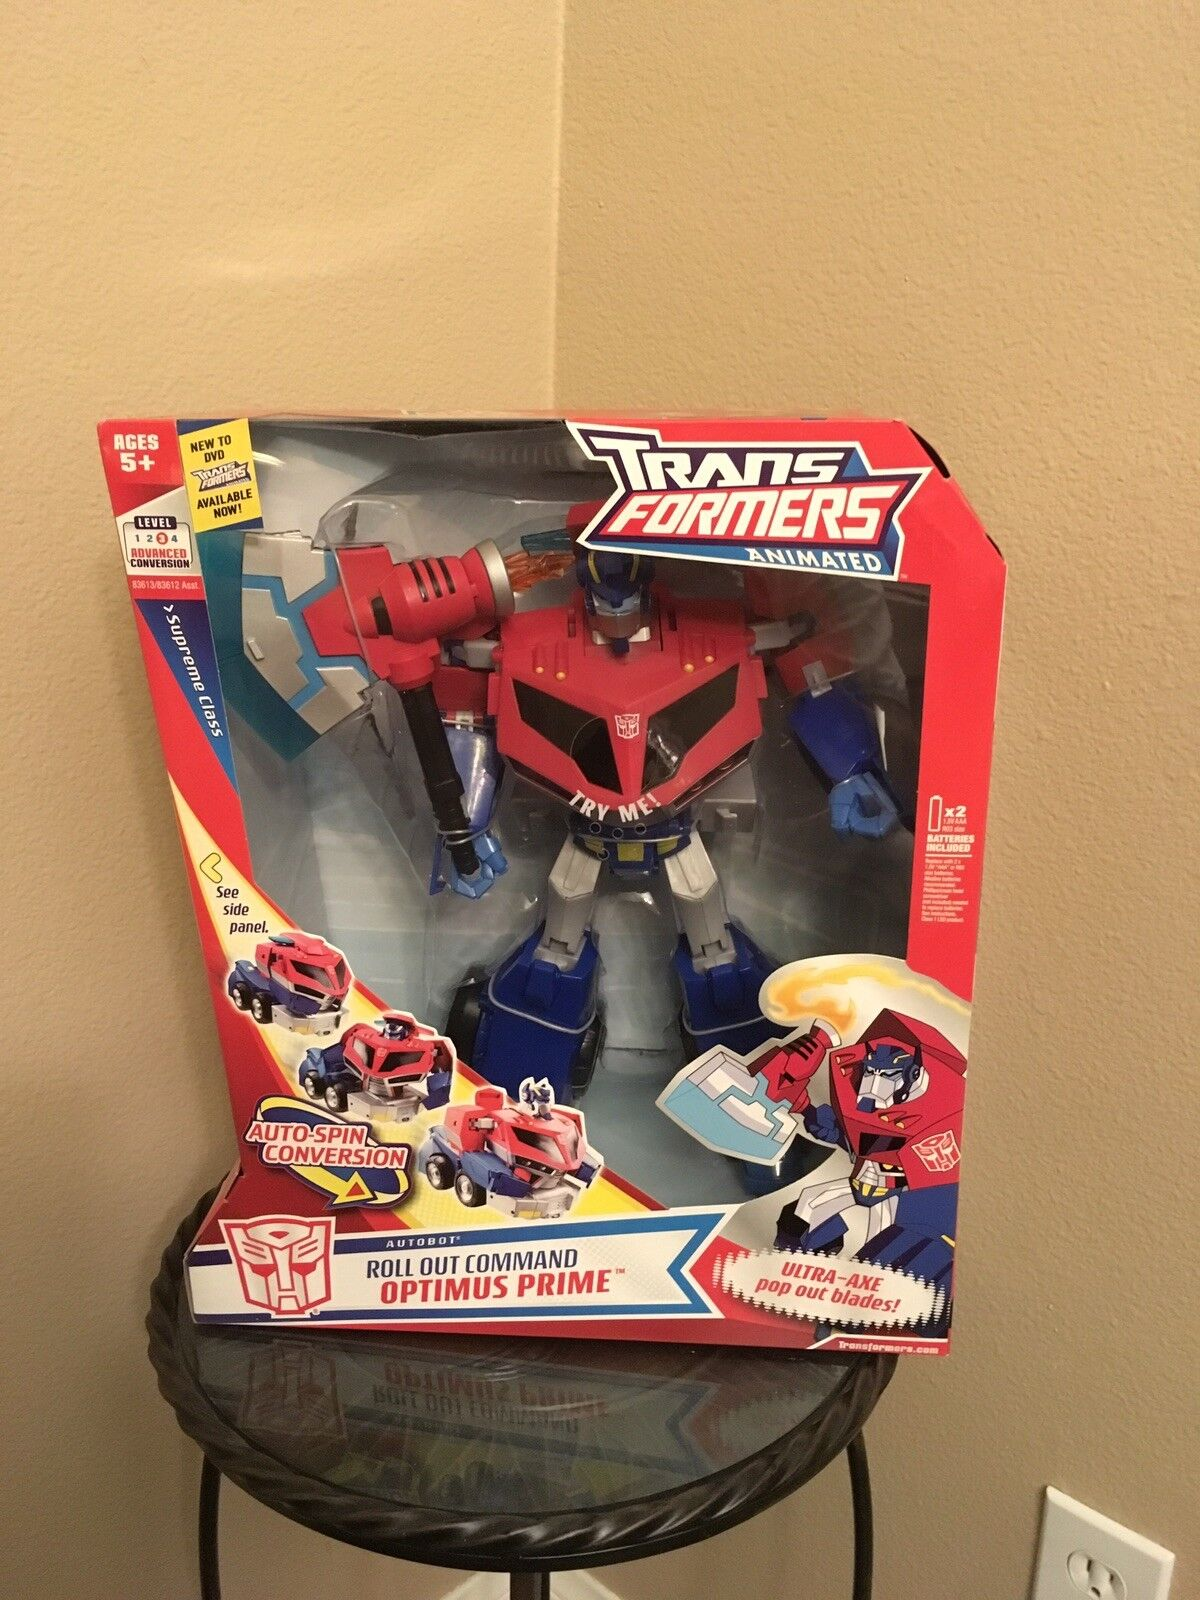 Transformers Animated Clase Autobot implementar supremo comando Optimus Prime Nuevo En Caja